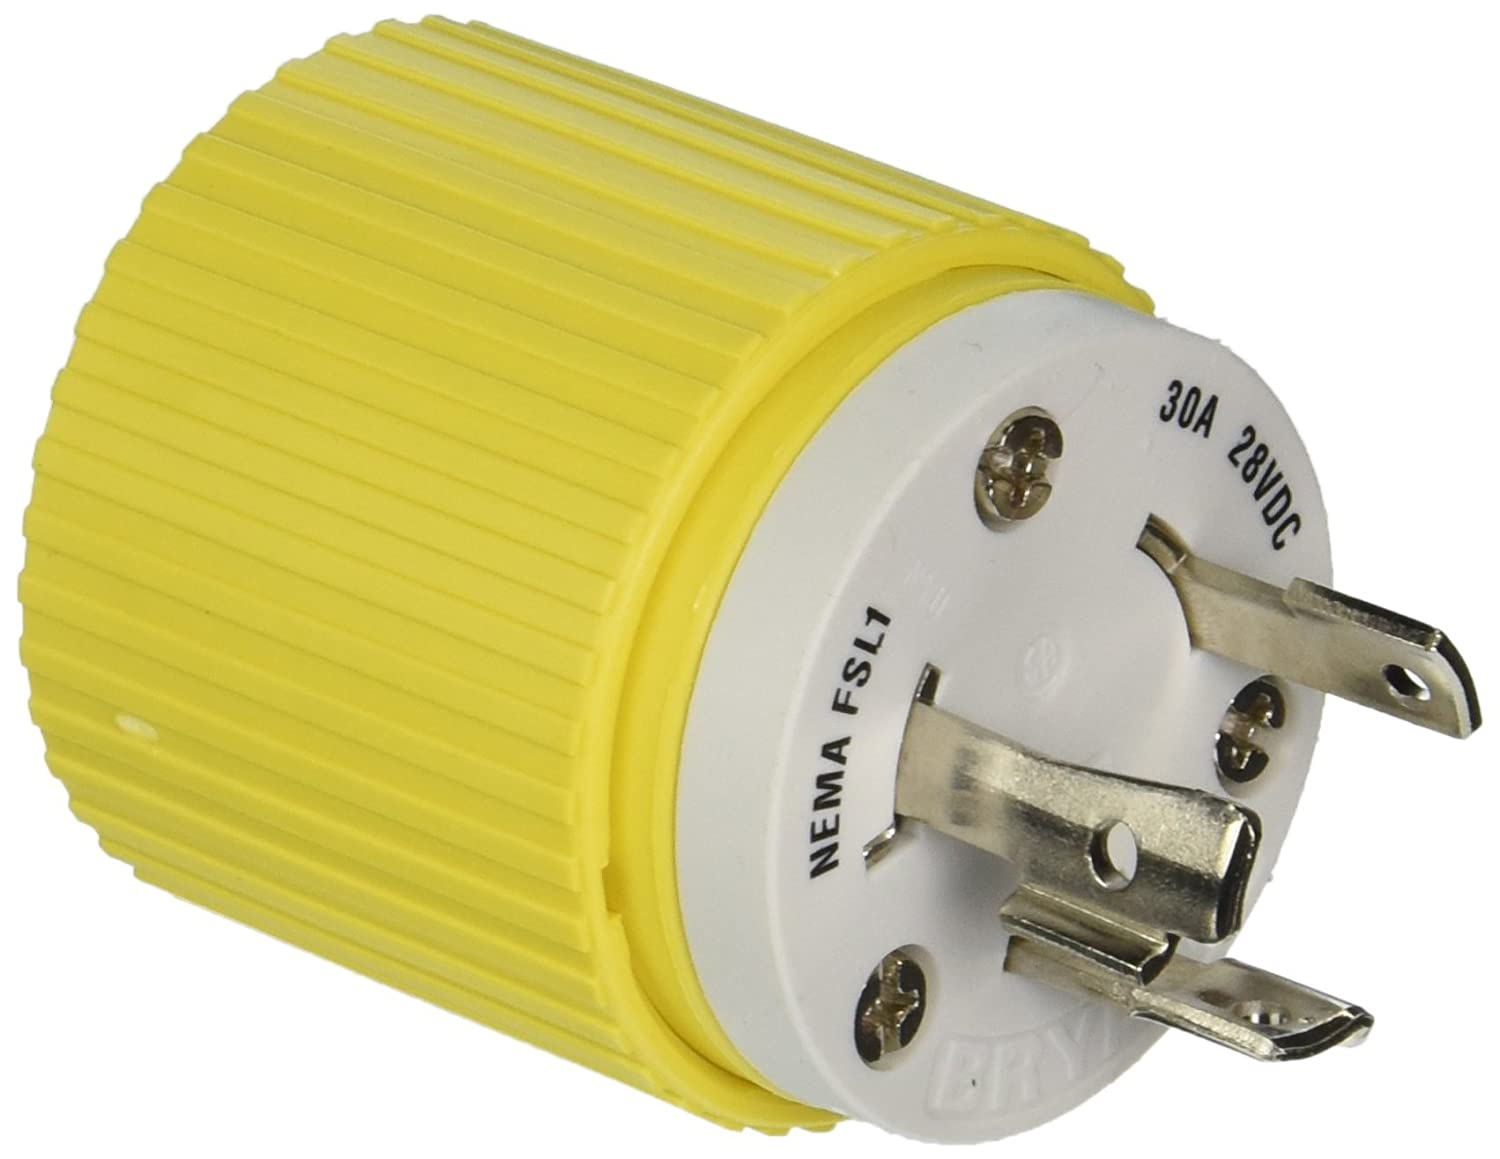 Hubbell wiring plug wiring diagram center hubbell wiring systems hbl328dcp locking plug 30a 28 vdc yellow rh amazon com hubbell plug wiring hubbell plug wiring diagram asfbconference2016 Choice Image